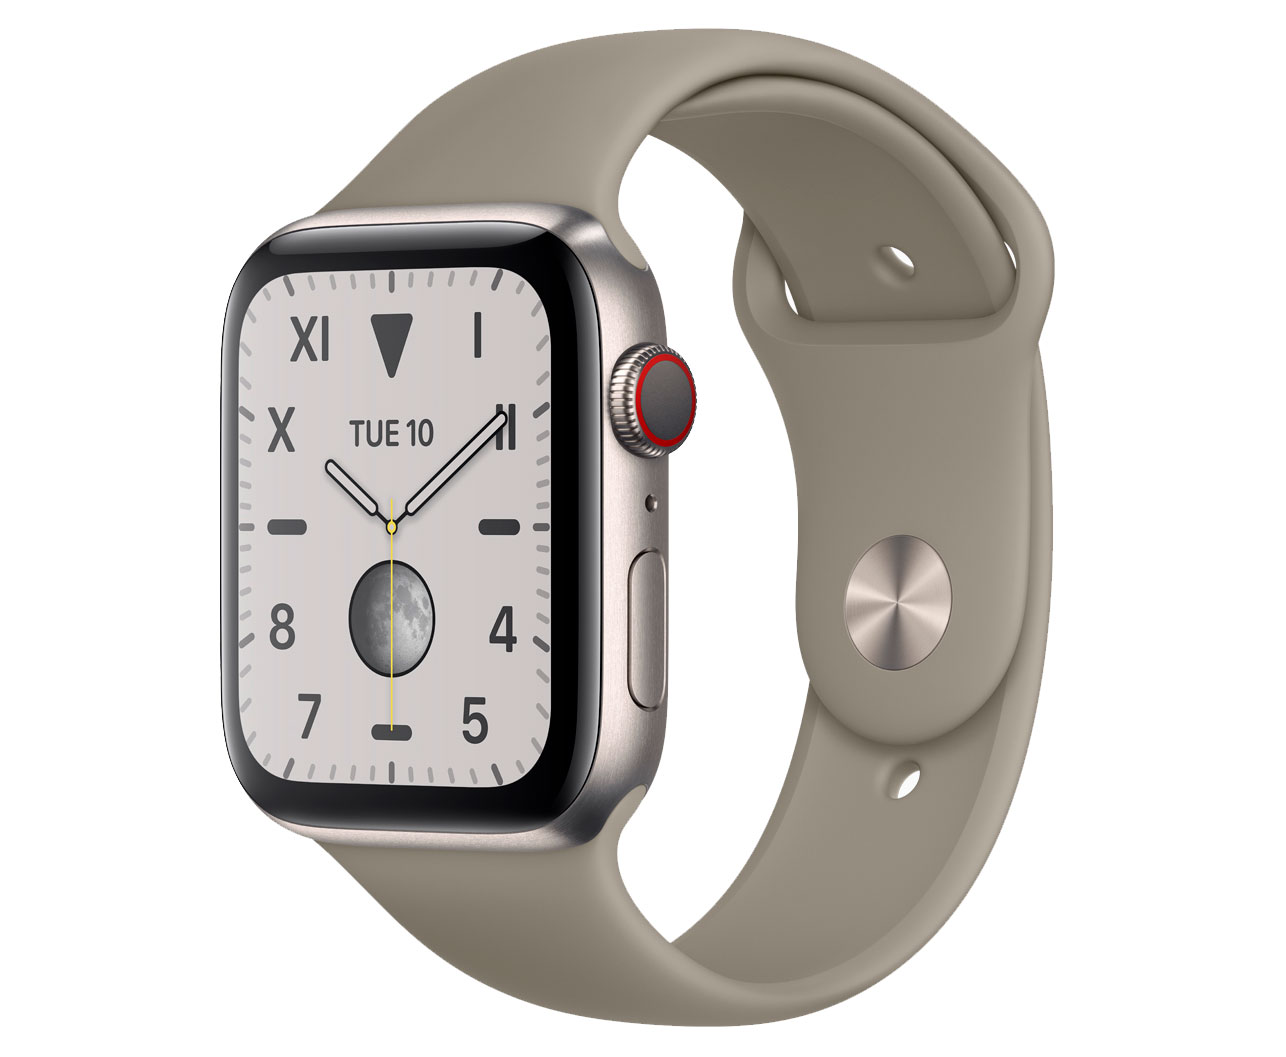 https://www.macfreak.nl/modules/news/images/zArt.AppleWatch5-natural-brushed-titanium-case-viper-natural-band-091019.jpg